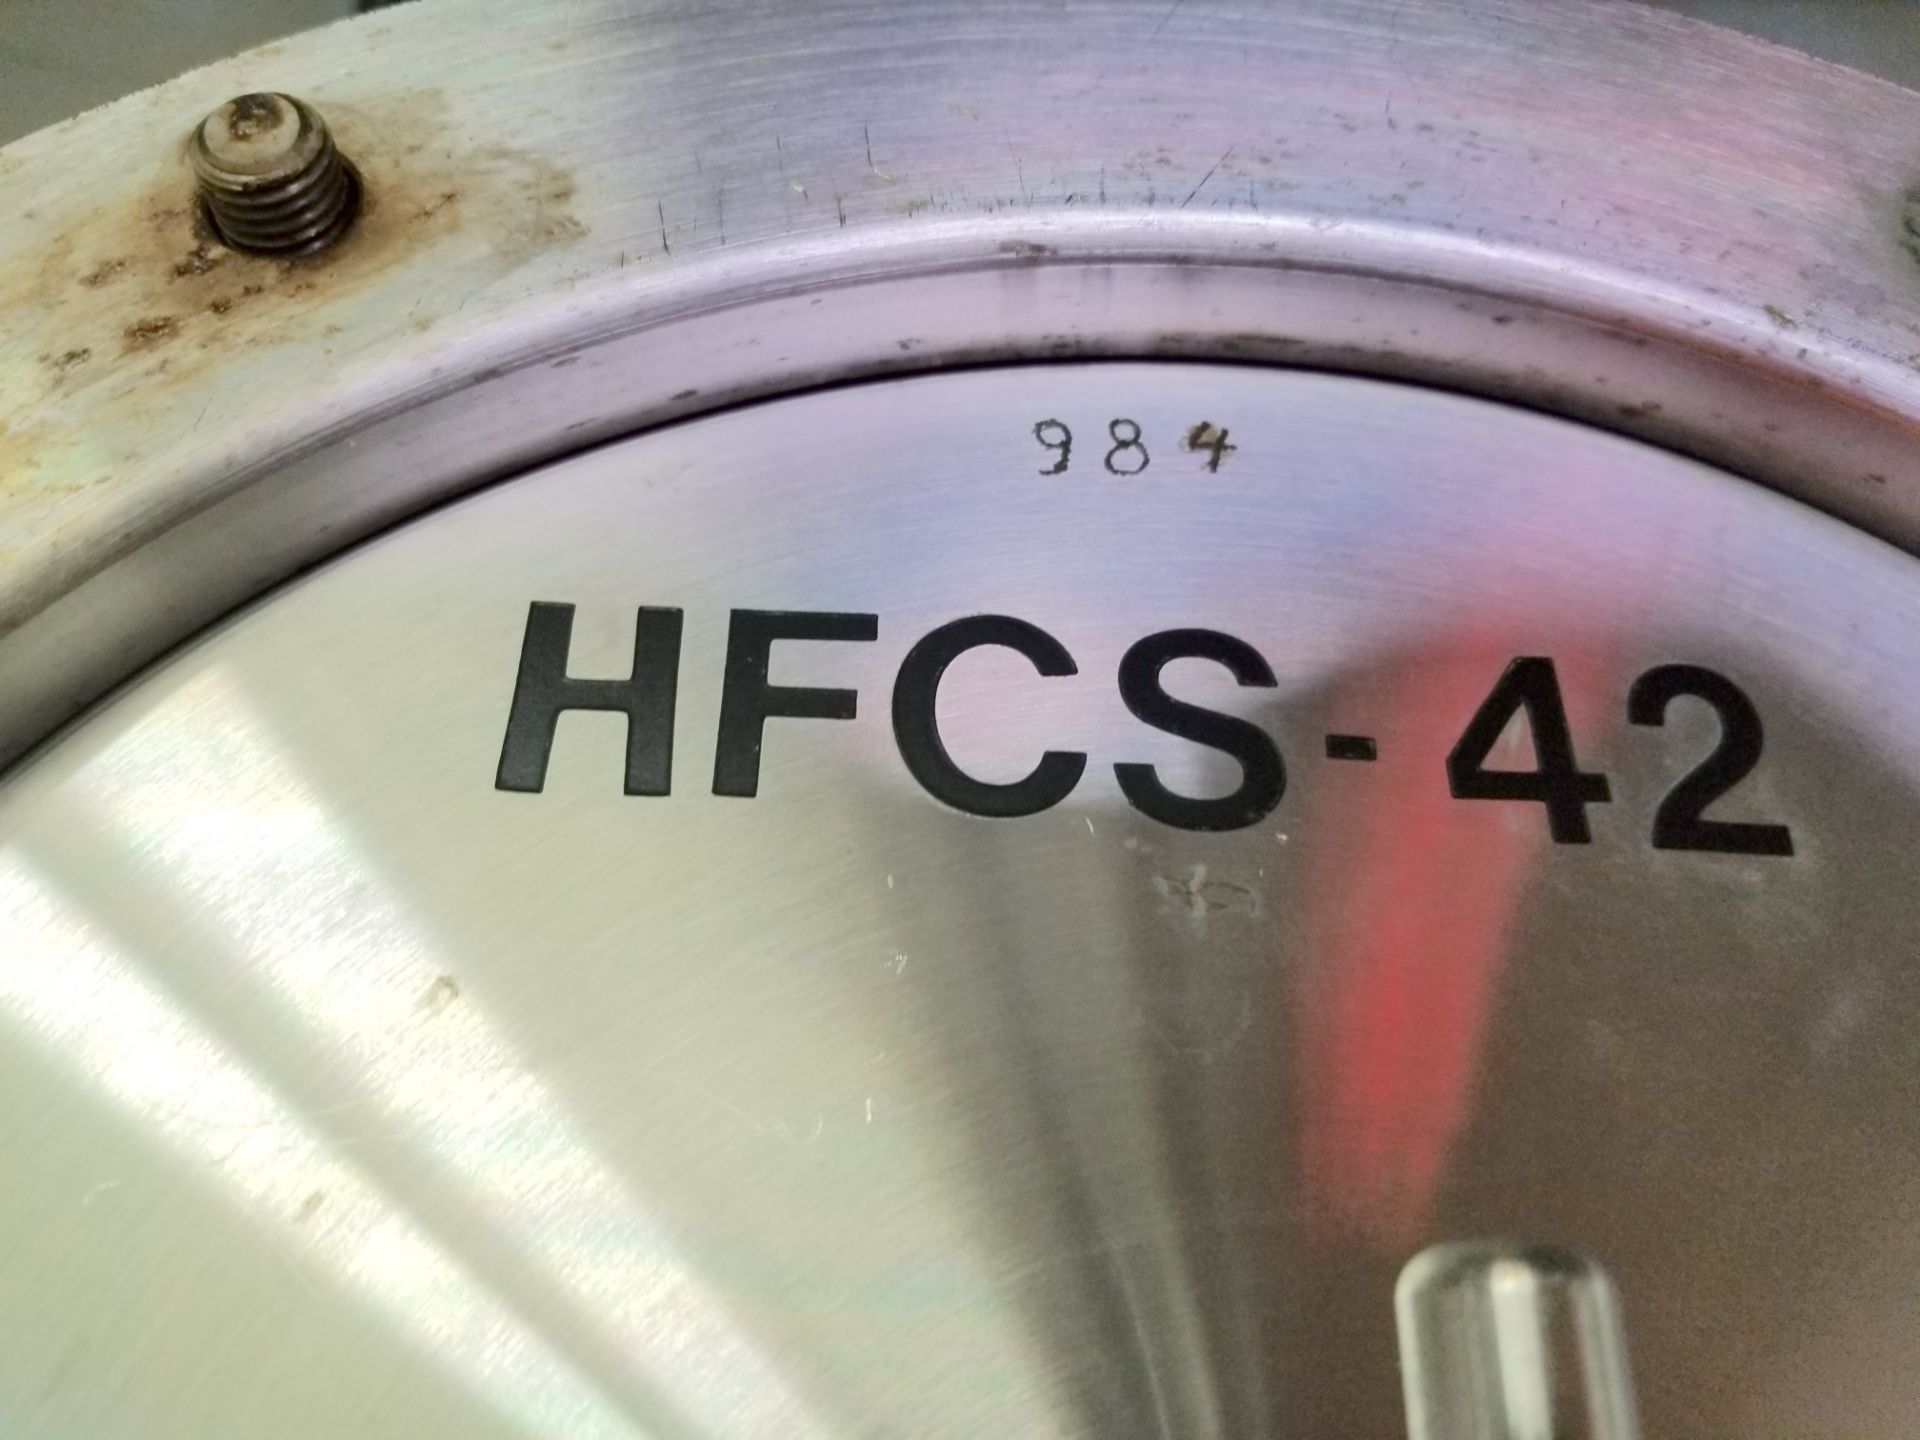 HCFS-42 Corn Syrup Flow Meter 3 Inch Connections - Image 2 of 4